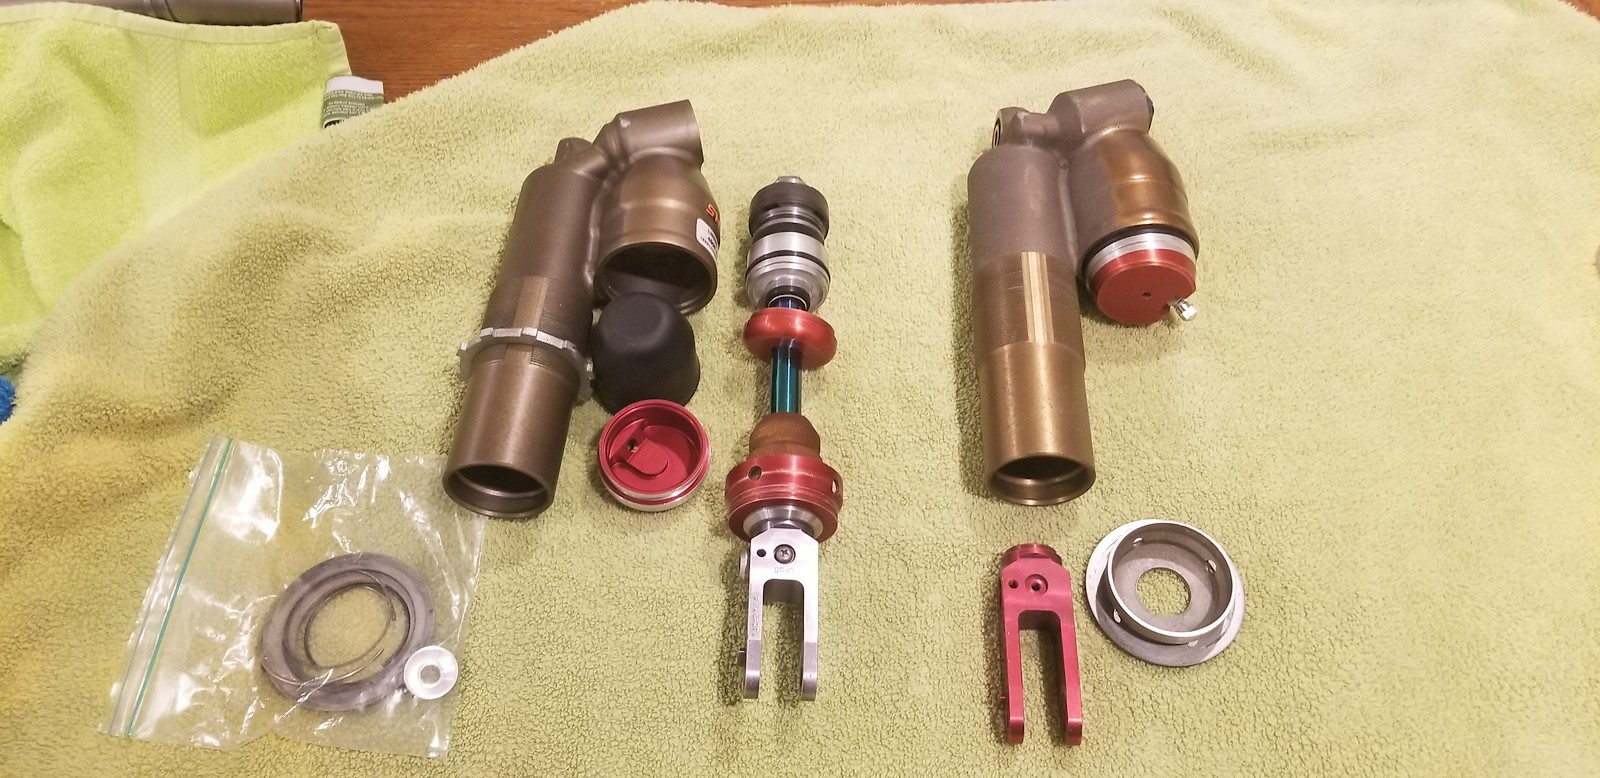 Crf showa A Kit shock 13-16 or 09-12 crf450 or Cr retro fit